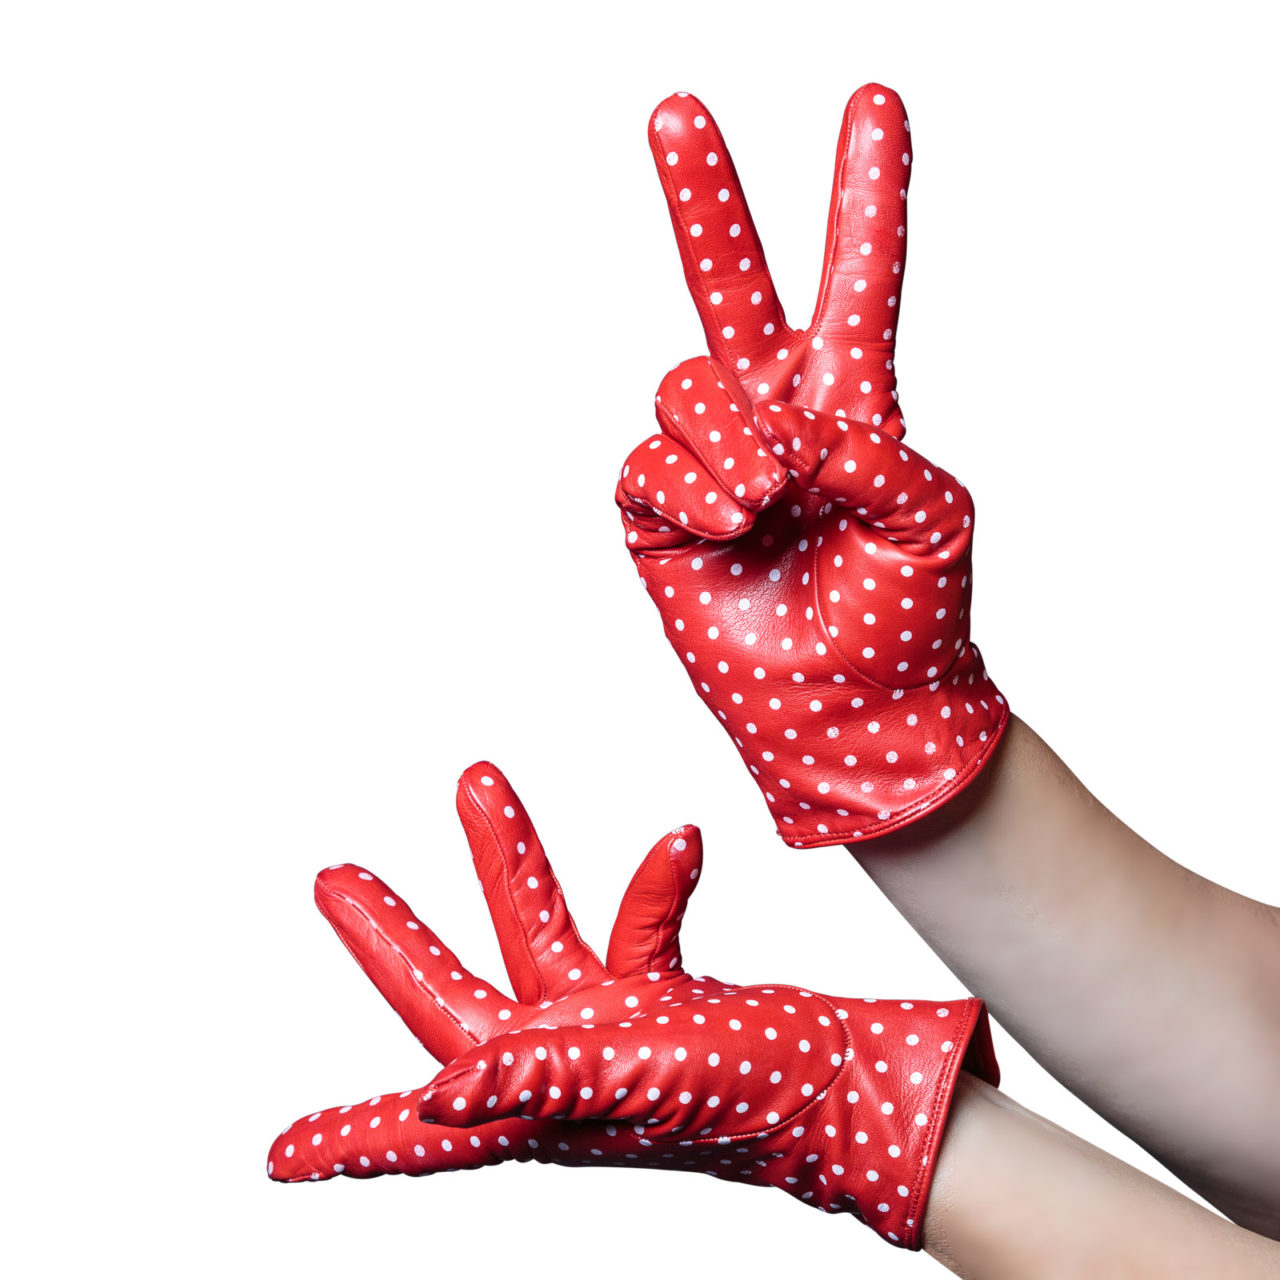 beau-gant-gloves-polka-dot-gloves-red-white-two